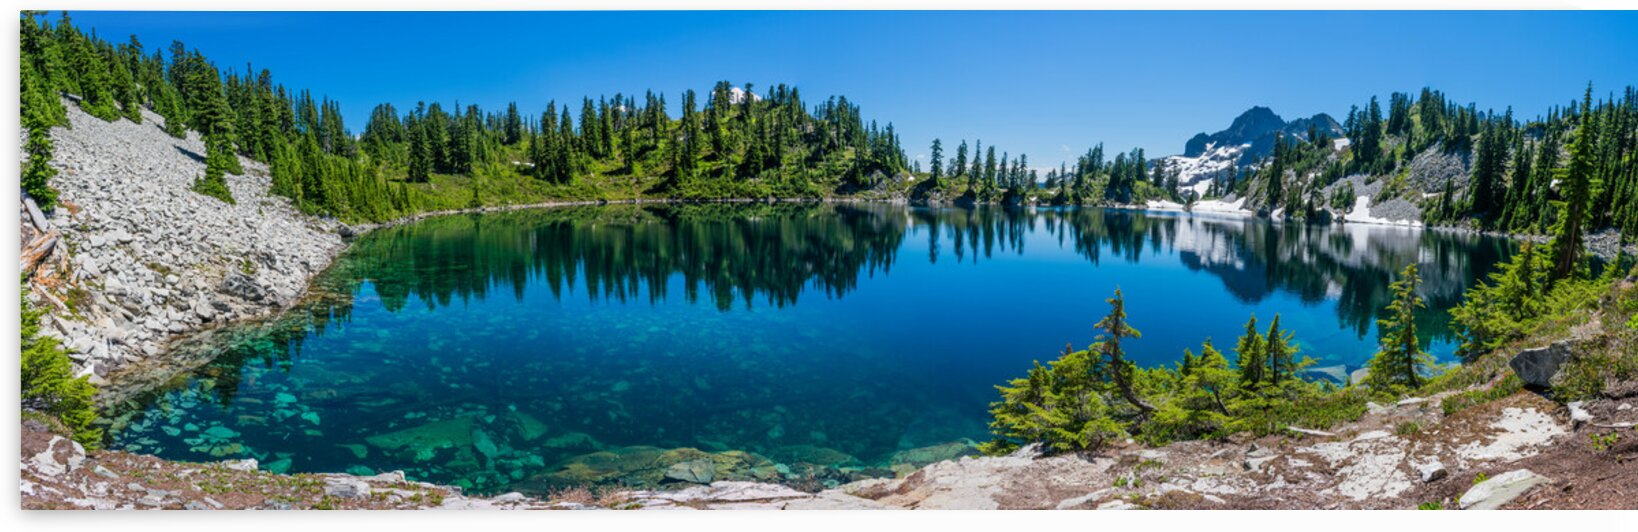 DSC 0552 Pano by Nick Welch